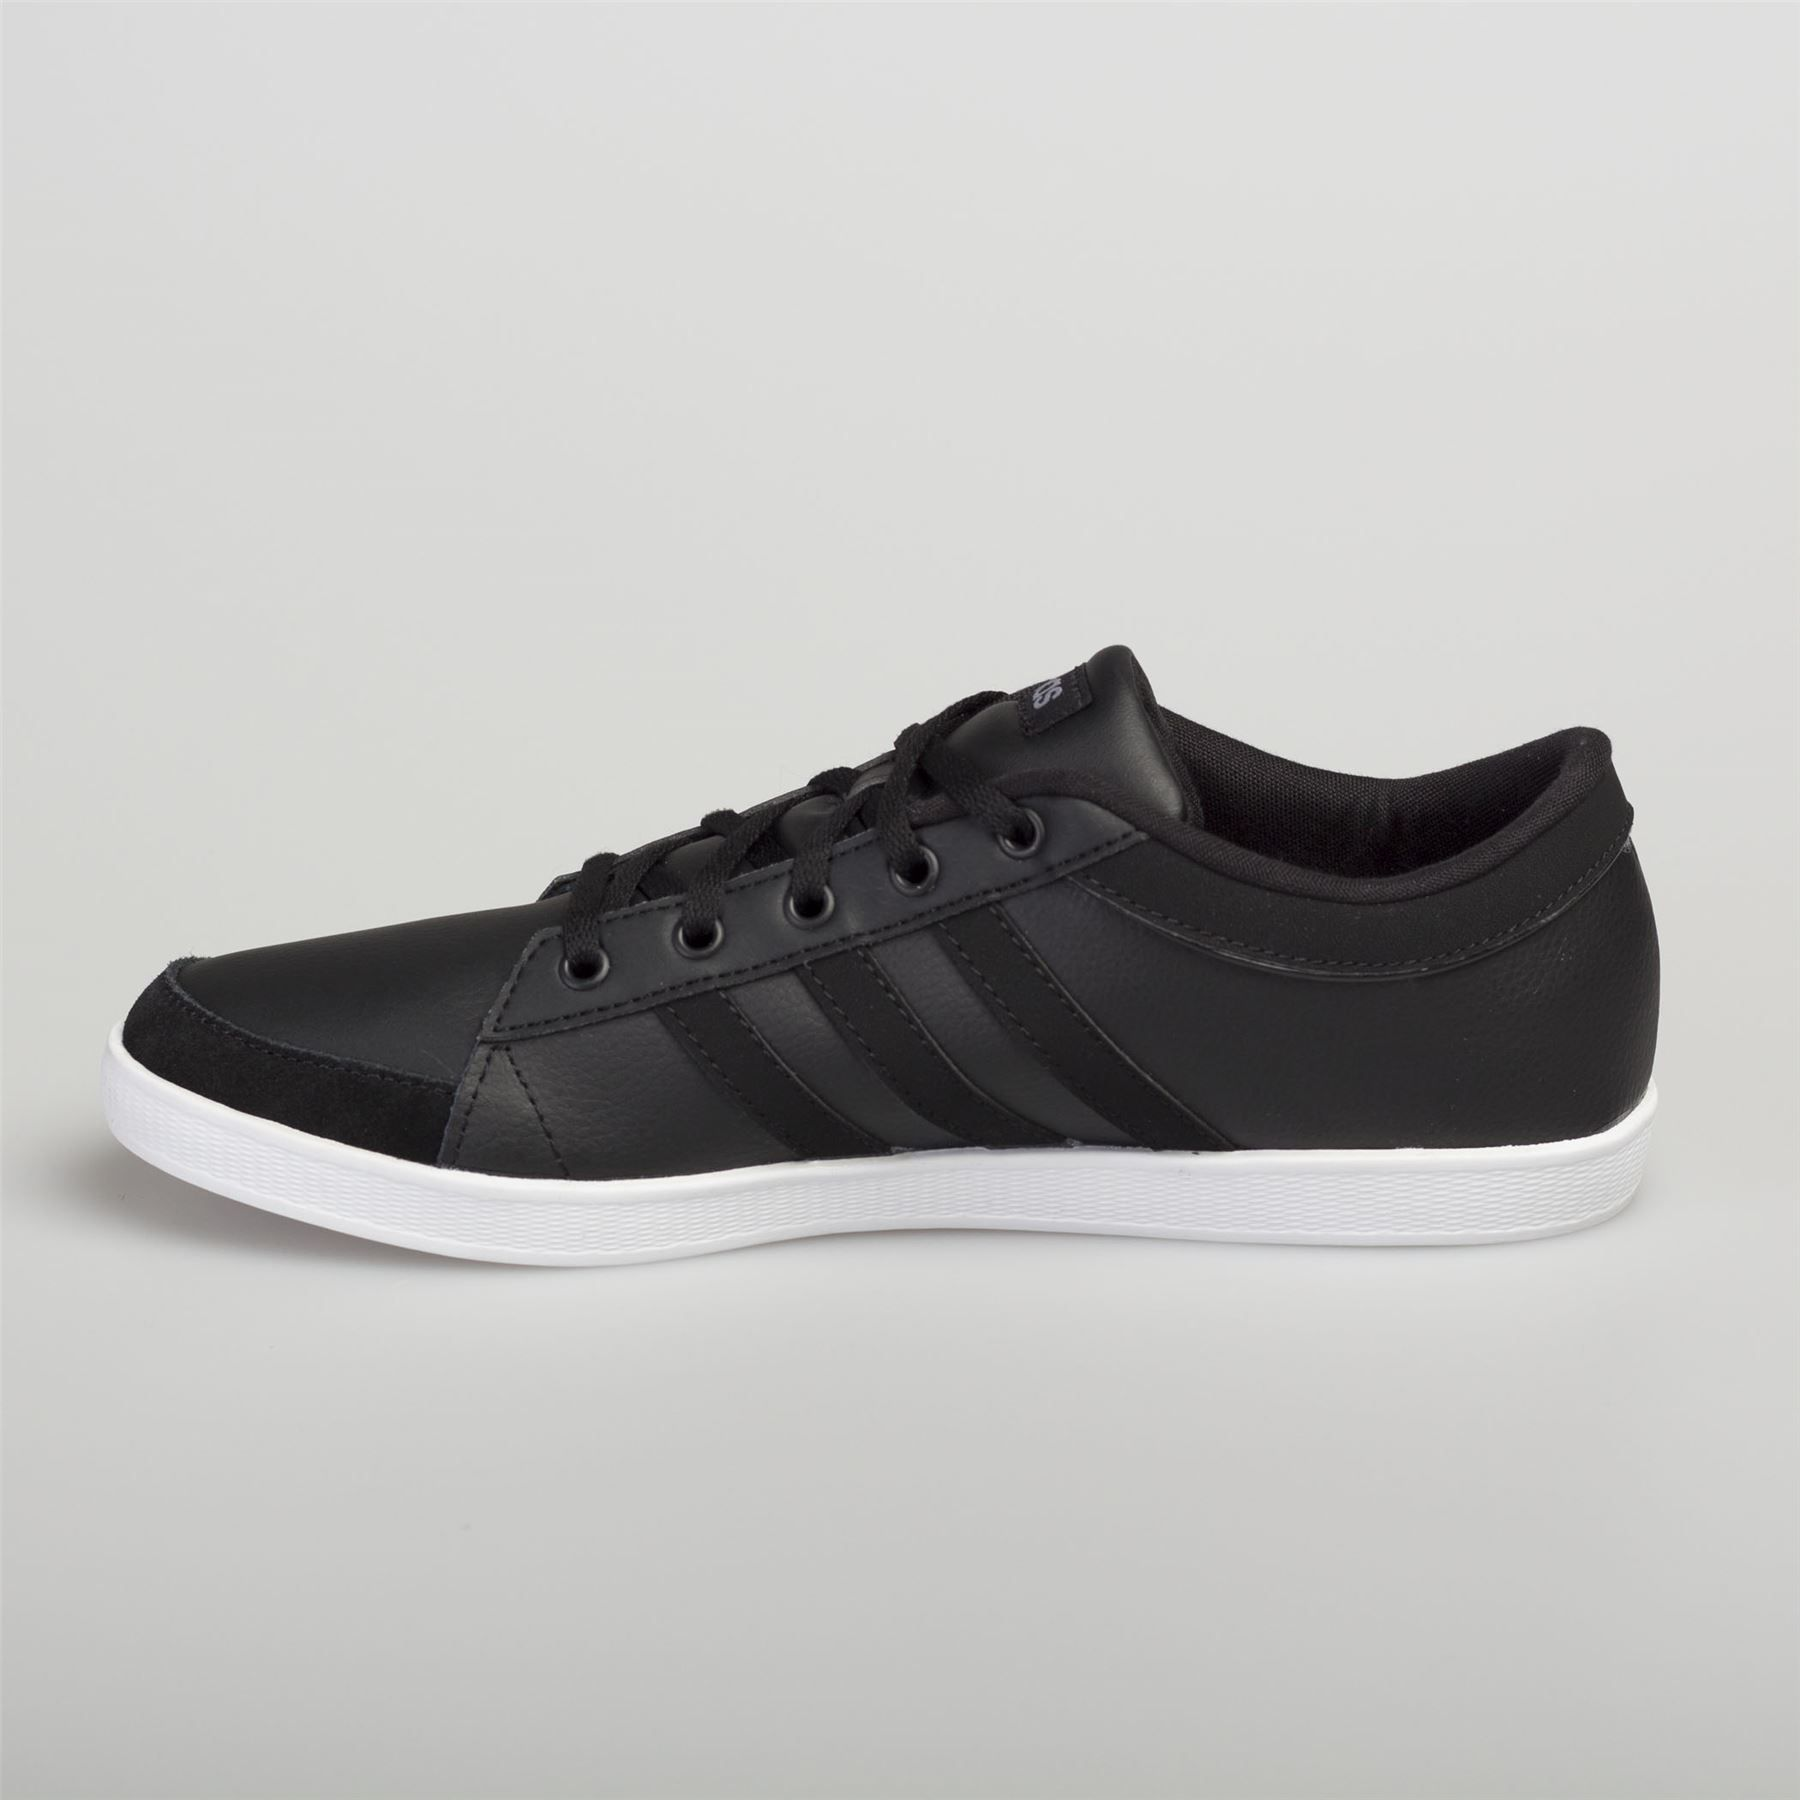 bccdfcf88e8c8 Adidas Men s Women s Leather Trainers Calneo Lite Racer Hoops VL Black White  Women Leather Trainers